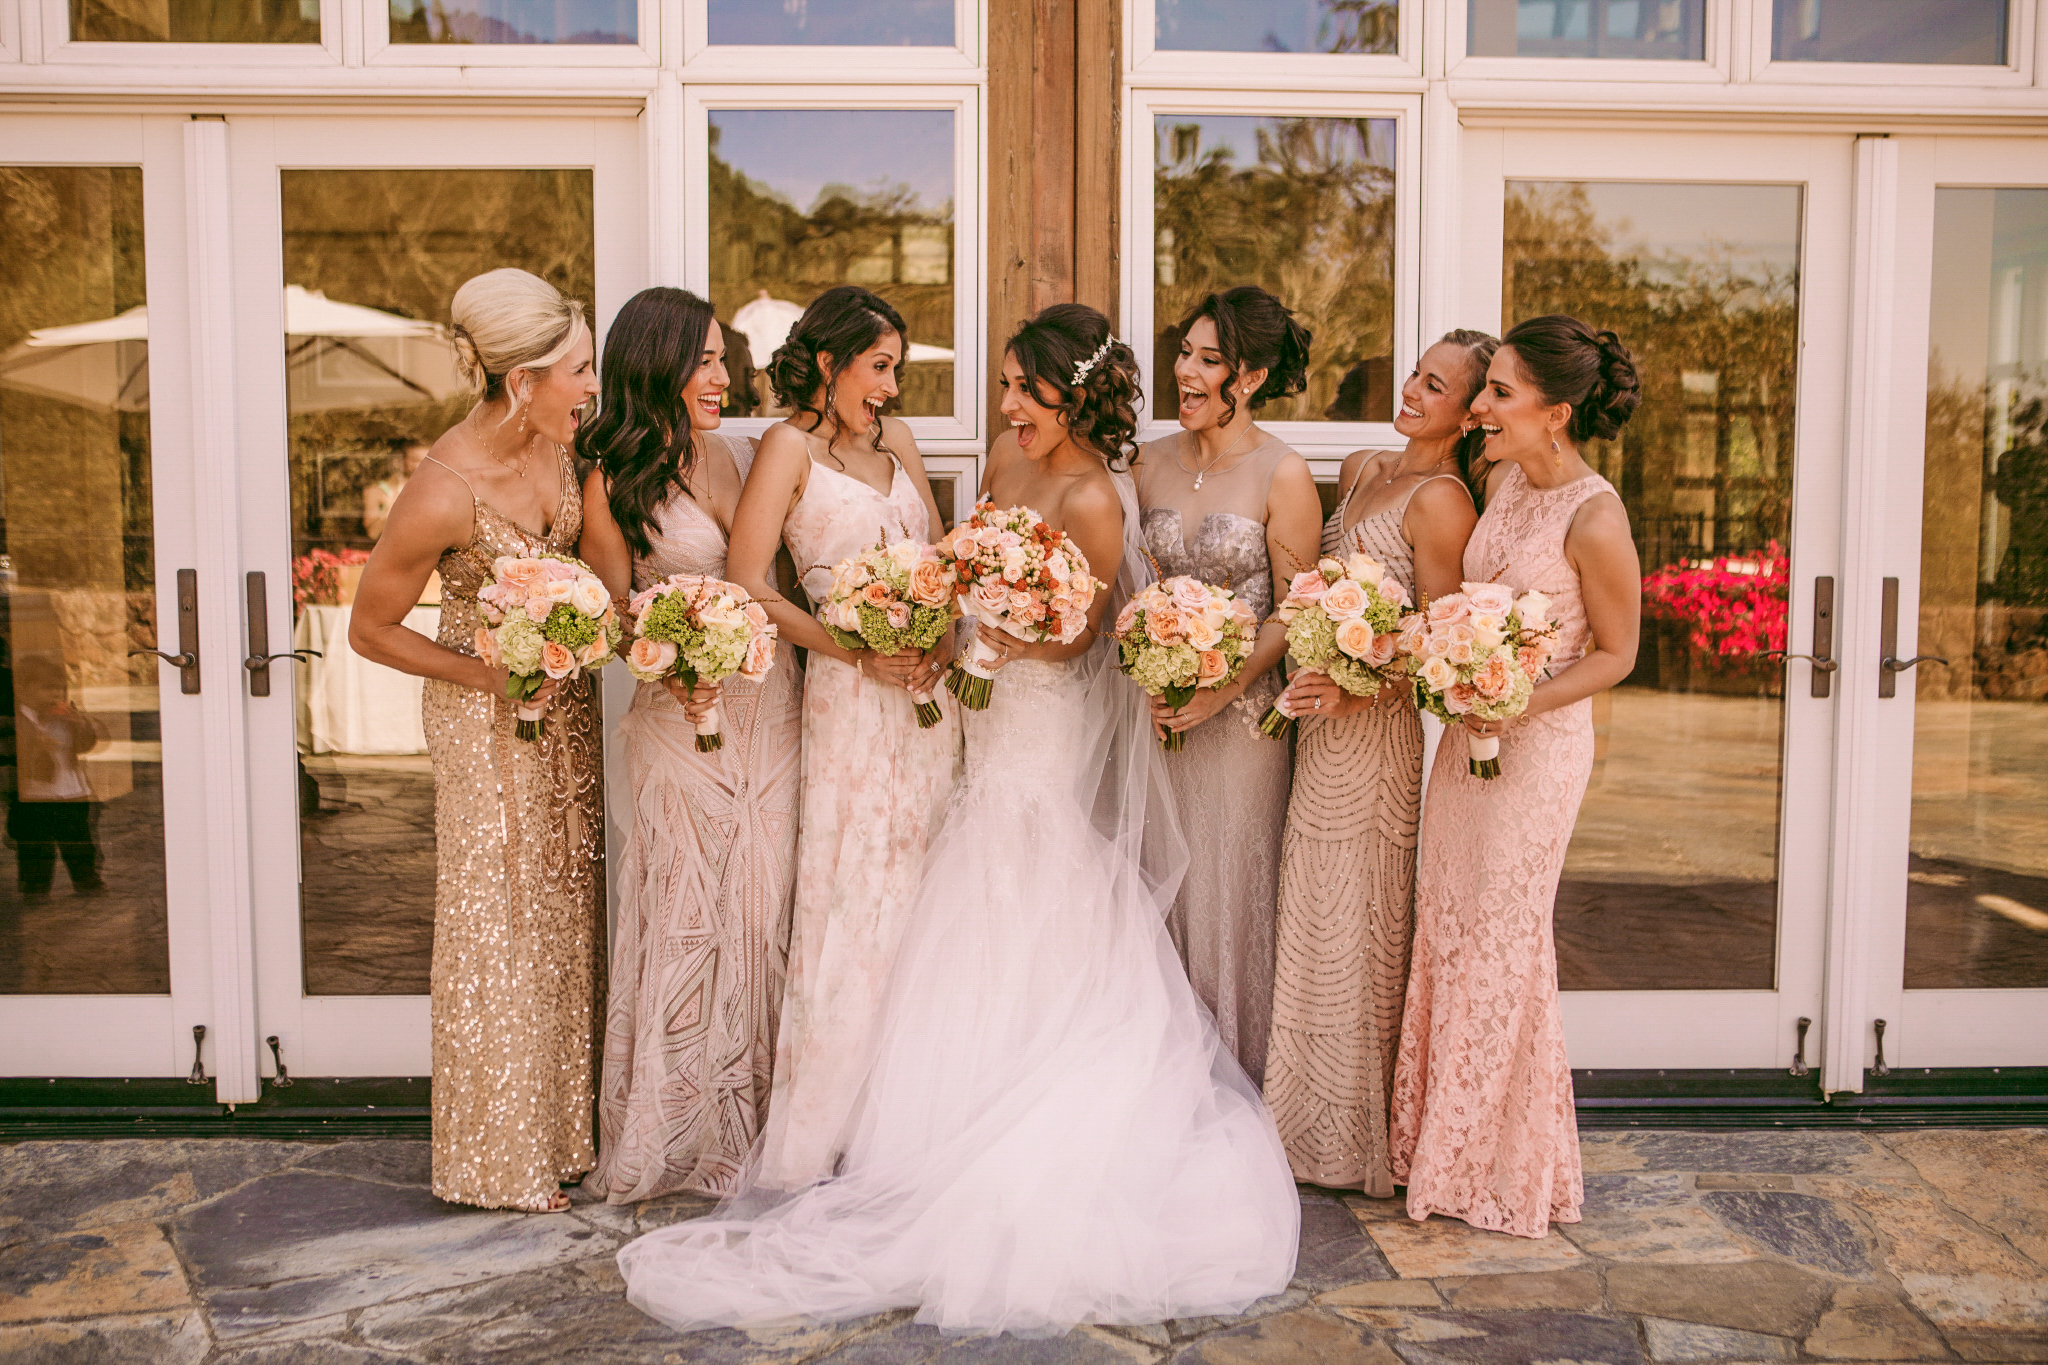 san diego wedding   photographer | women in dresses holding bouquets of flowers while laughing   with each other